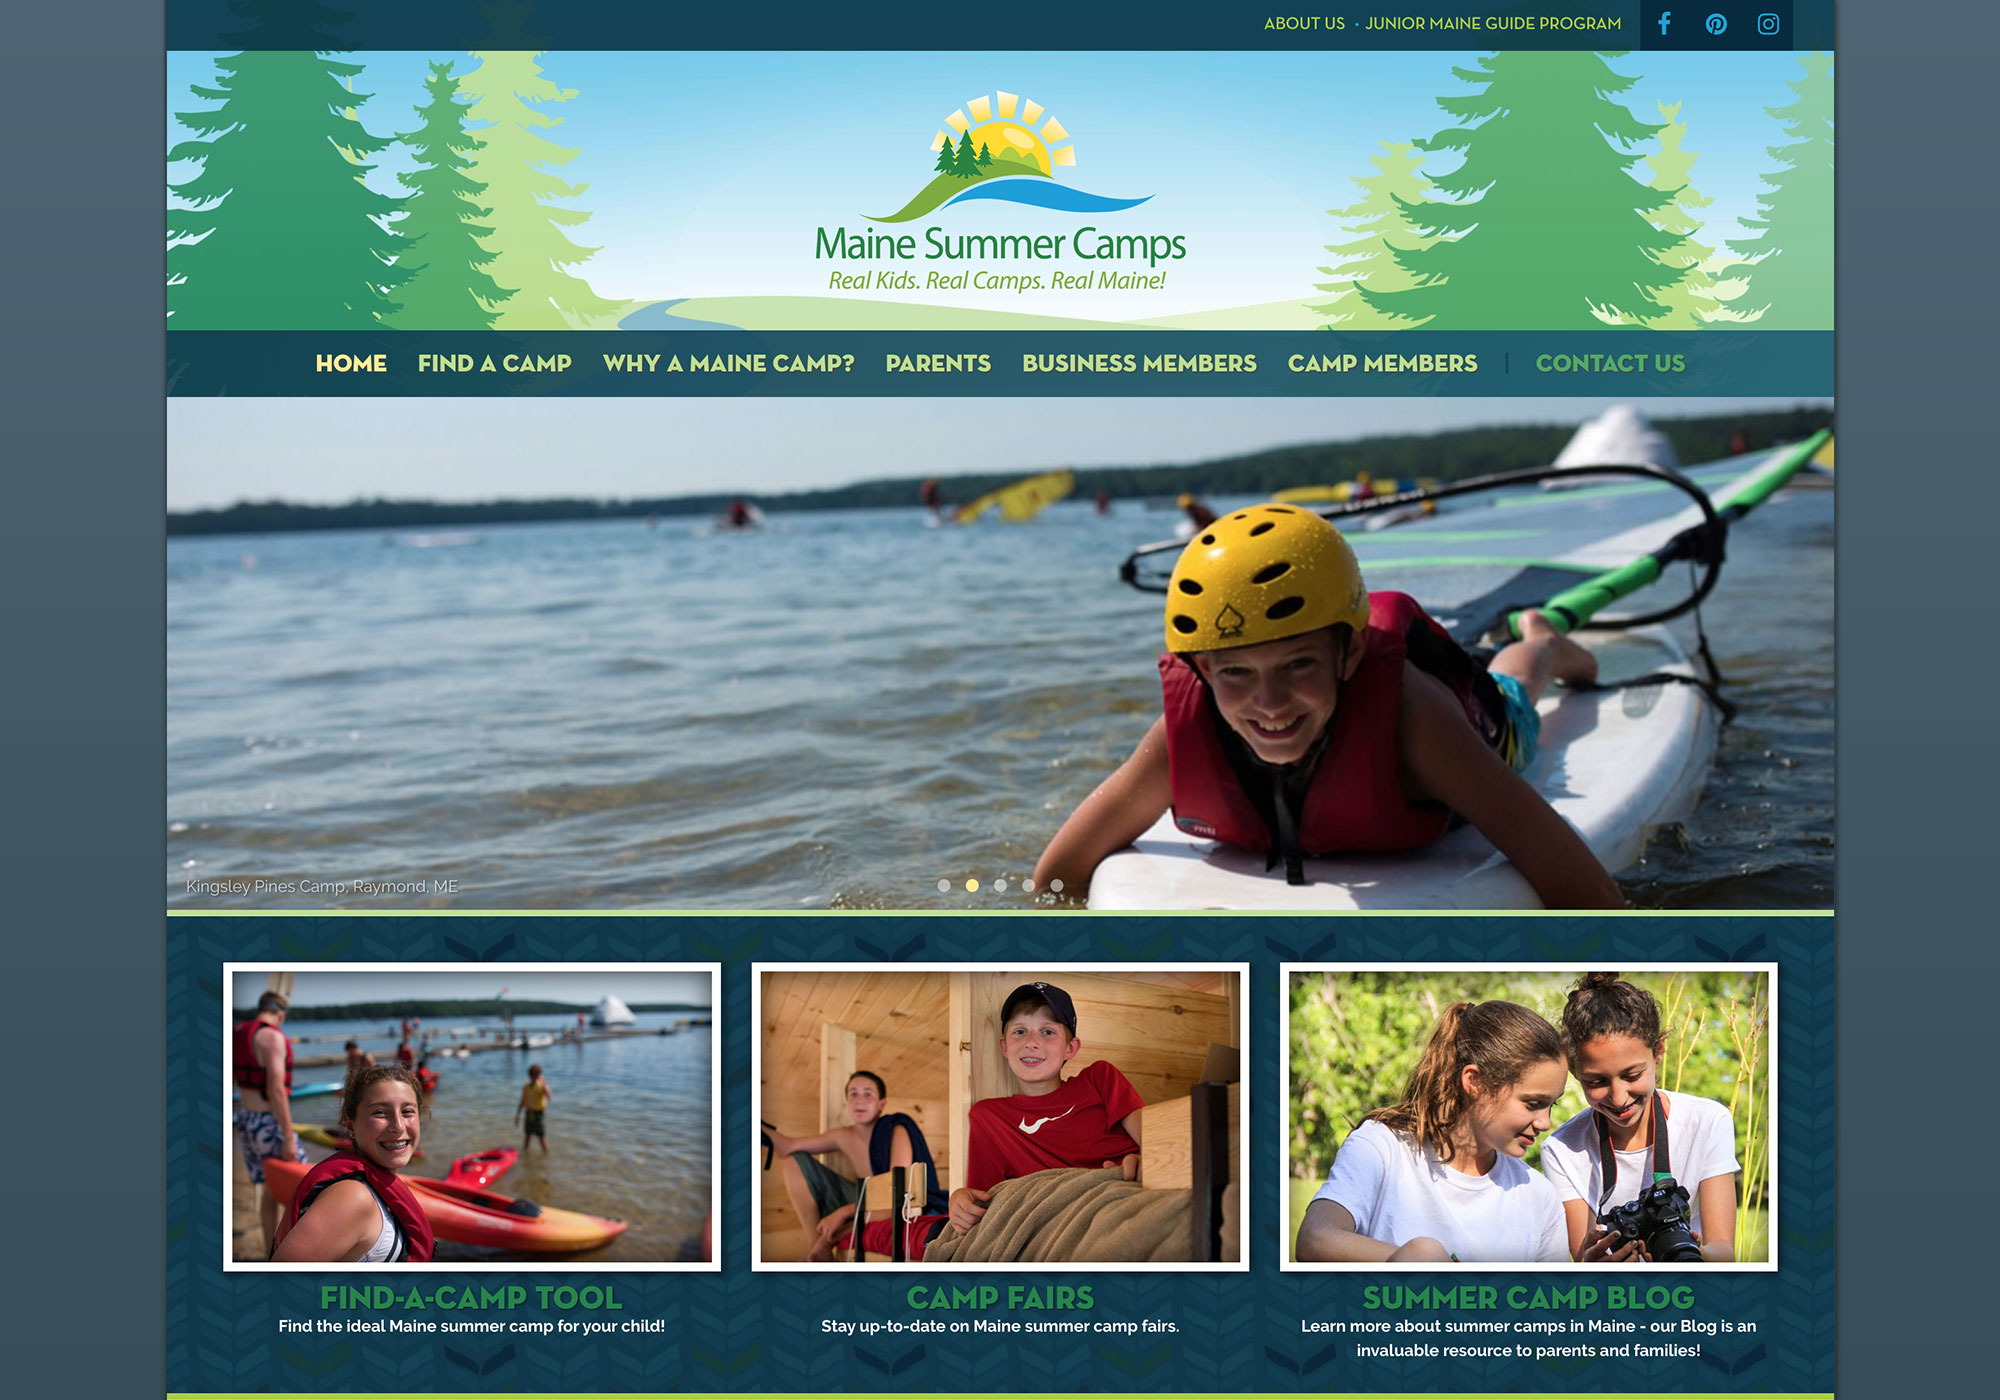 A screenshot of the SlickFish Studios designed and developed website for Maine Summer Camps.